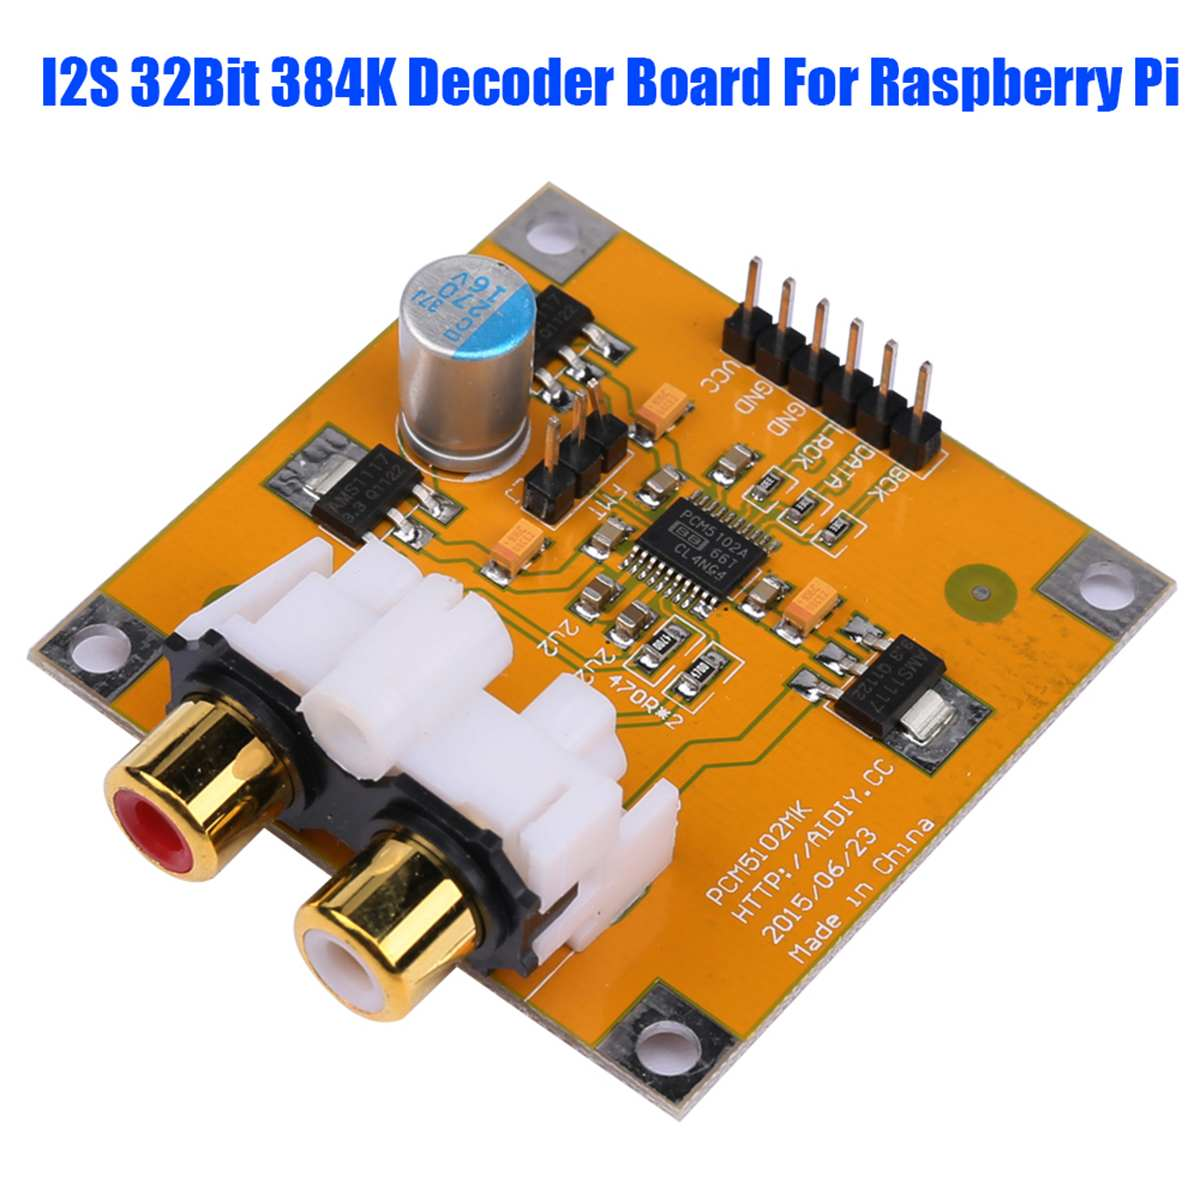 Audio & Video Replacement Parts Cliate 1pc Dac Decoder Board M5102/pcm5102a I2s 32bit 384k For Raspberry Pi Red Core Player